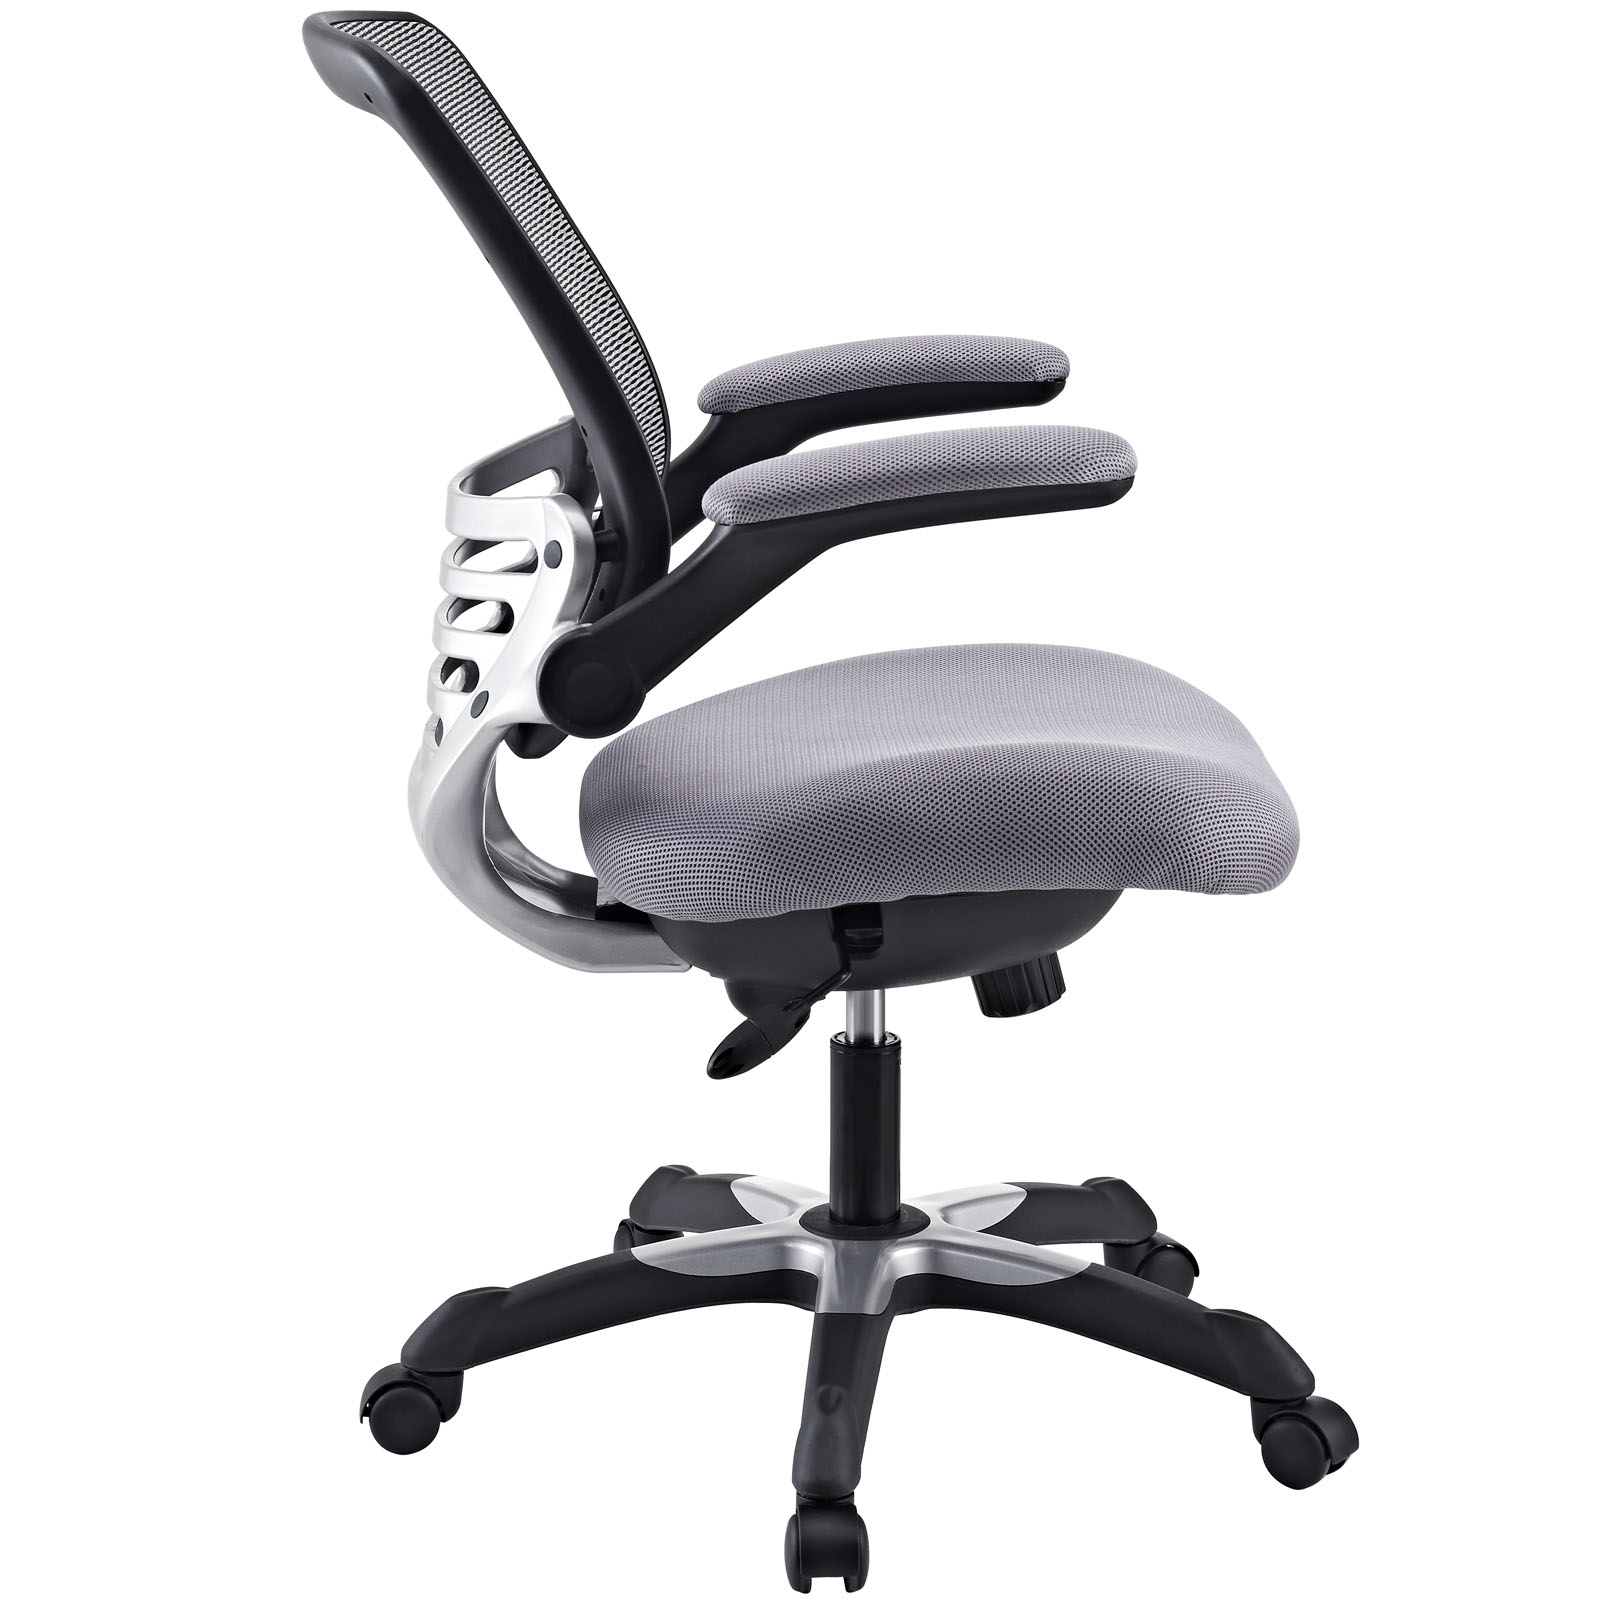 seat mesh chair back modway walmart articulate office and com colors multiple ip